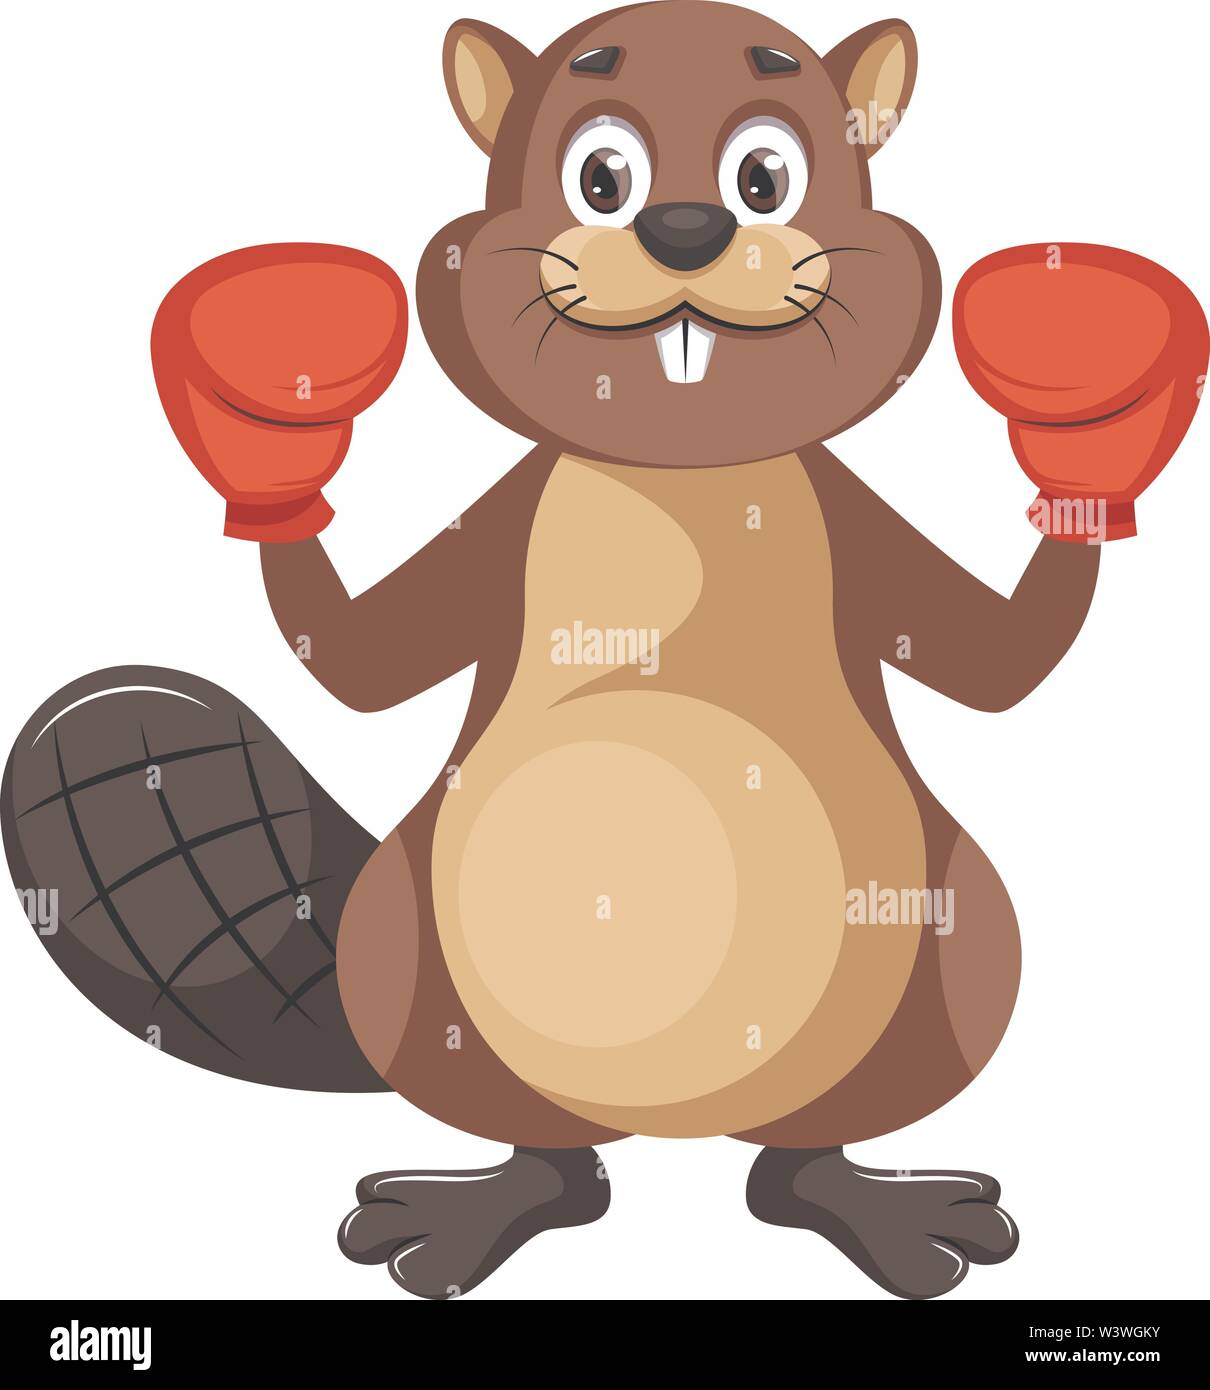 Beaver with boxing gloves, illustration, vector on white background. - Stock Image